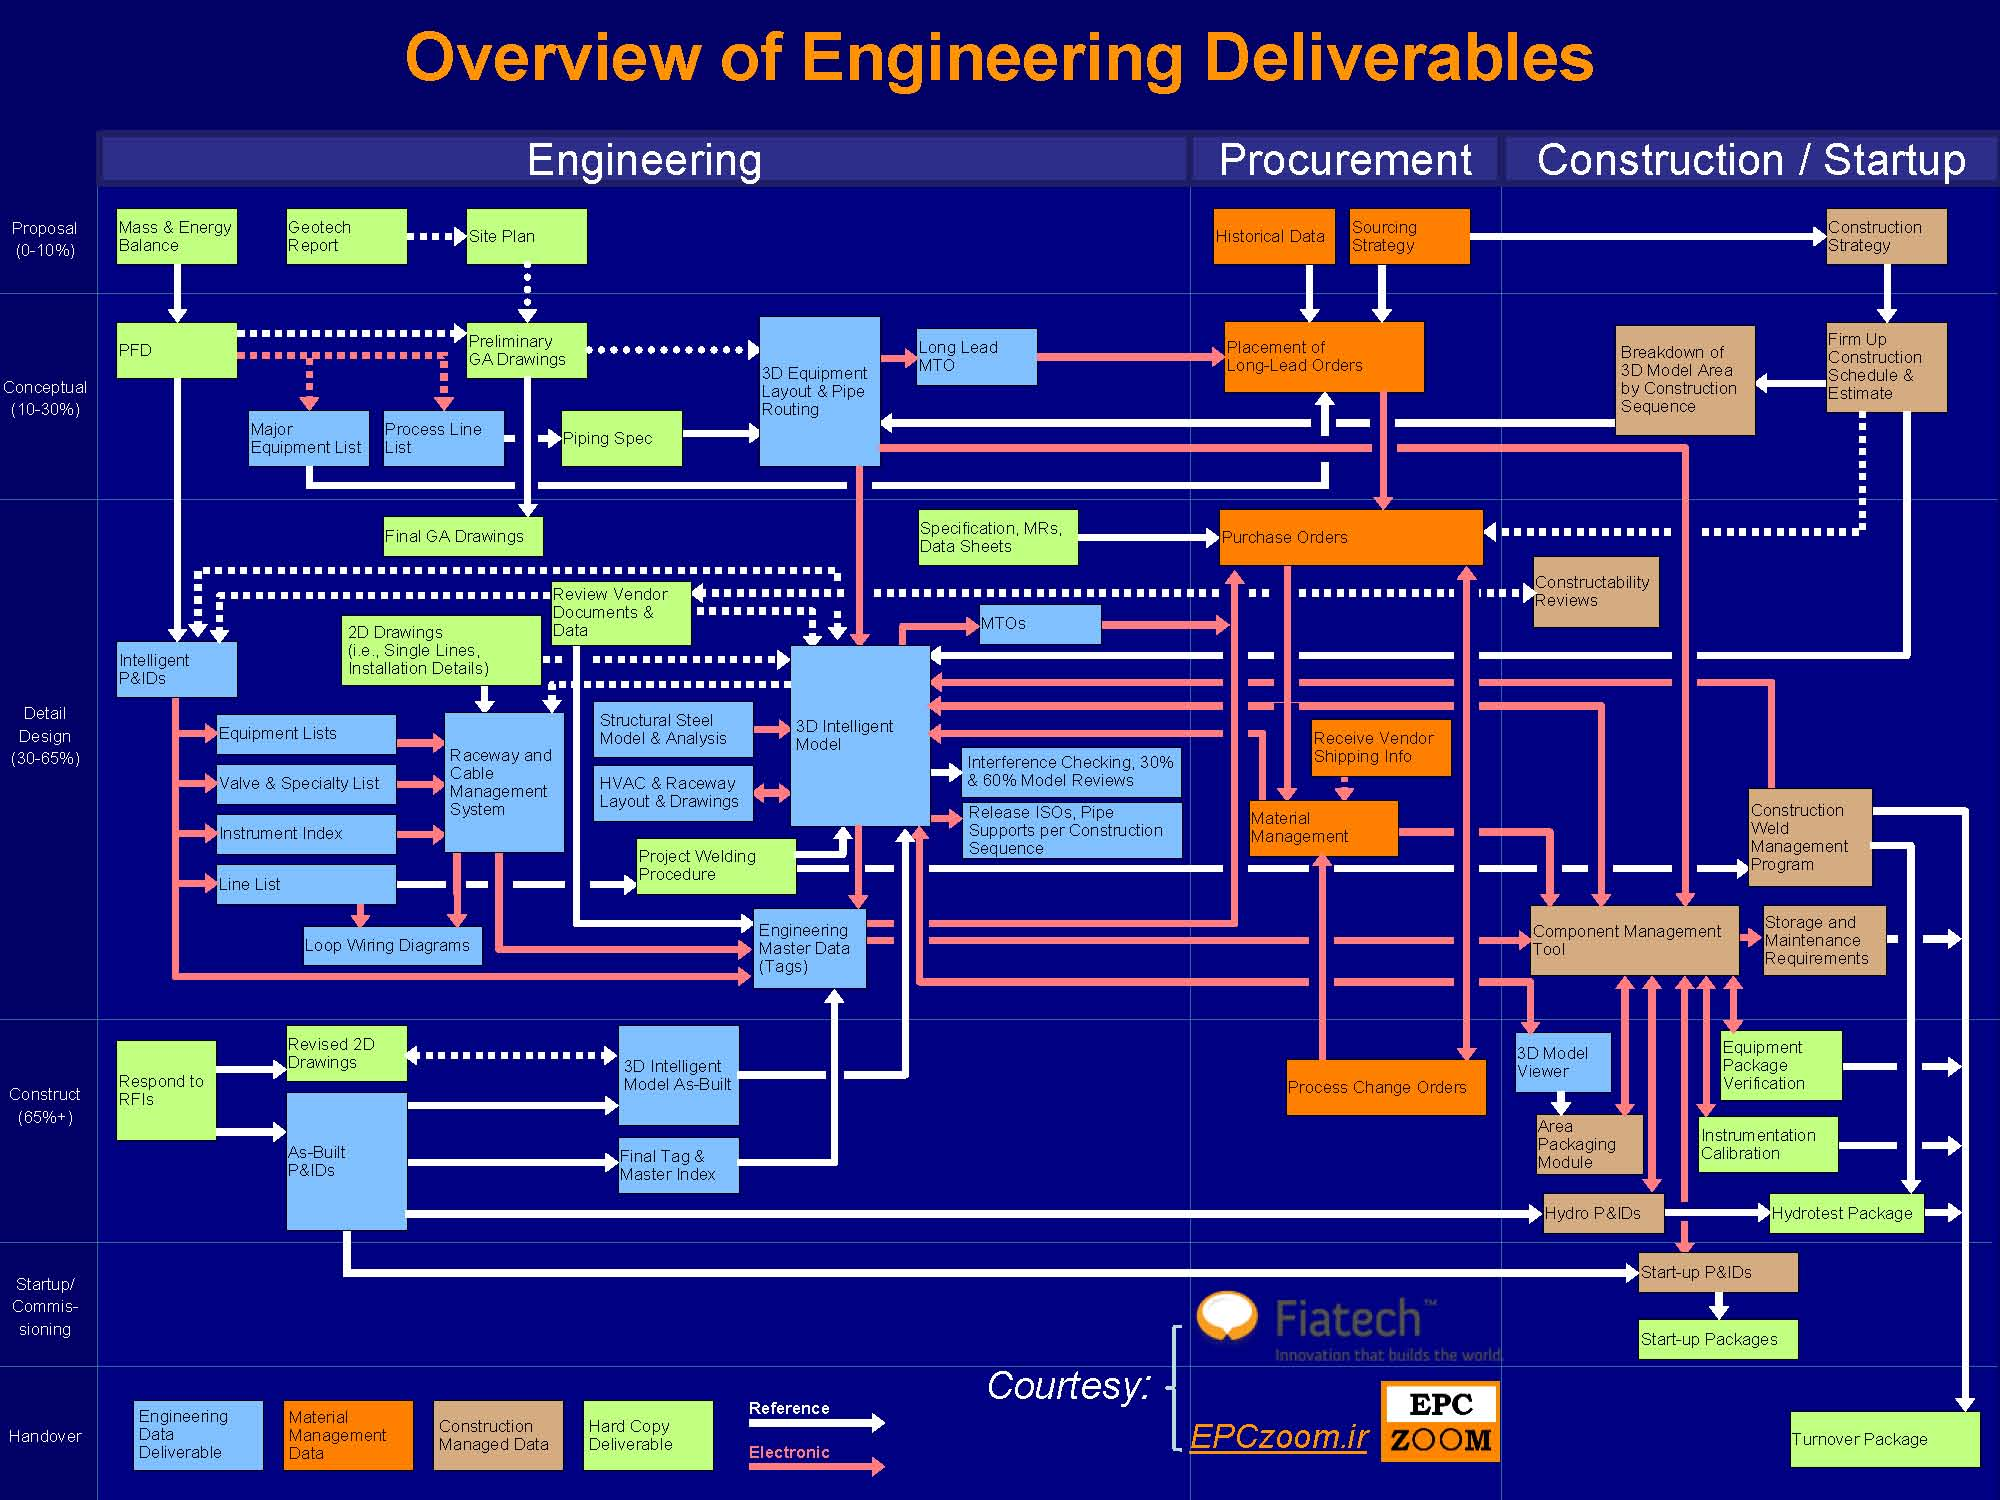 E - Overview of Engineering Deliverables - EPCzoom.ir